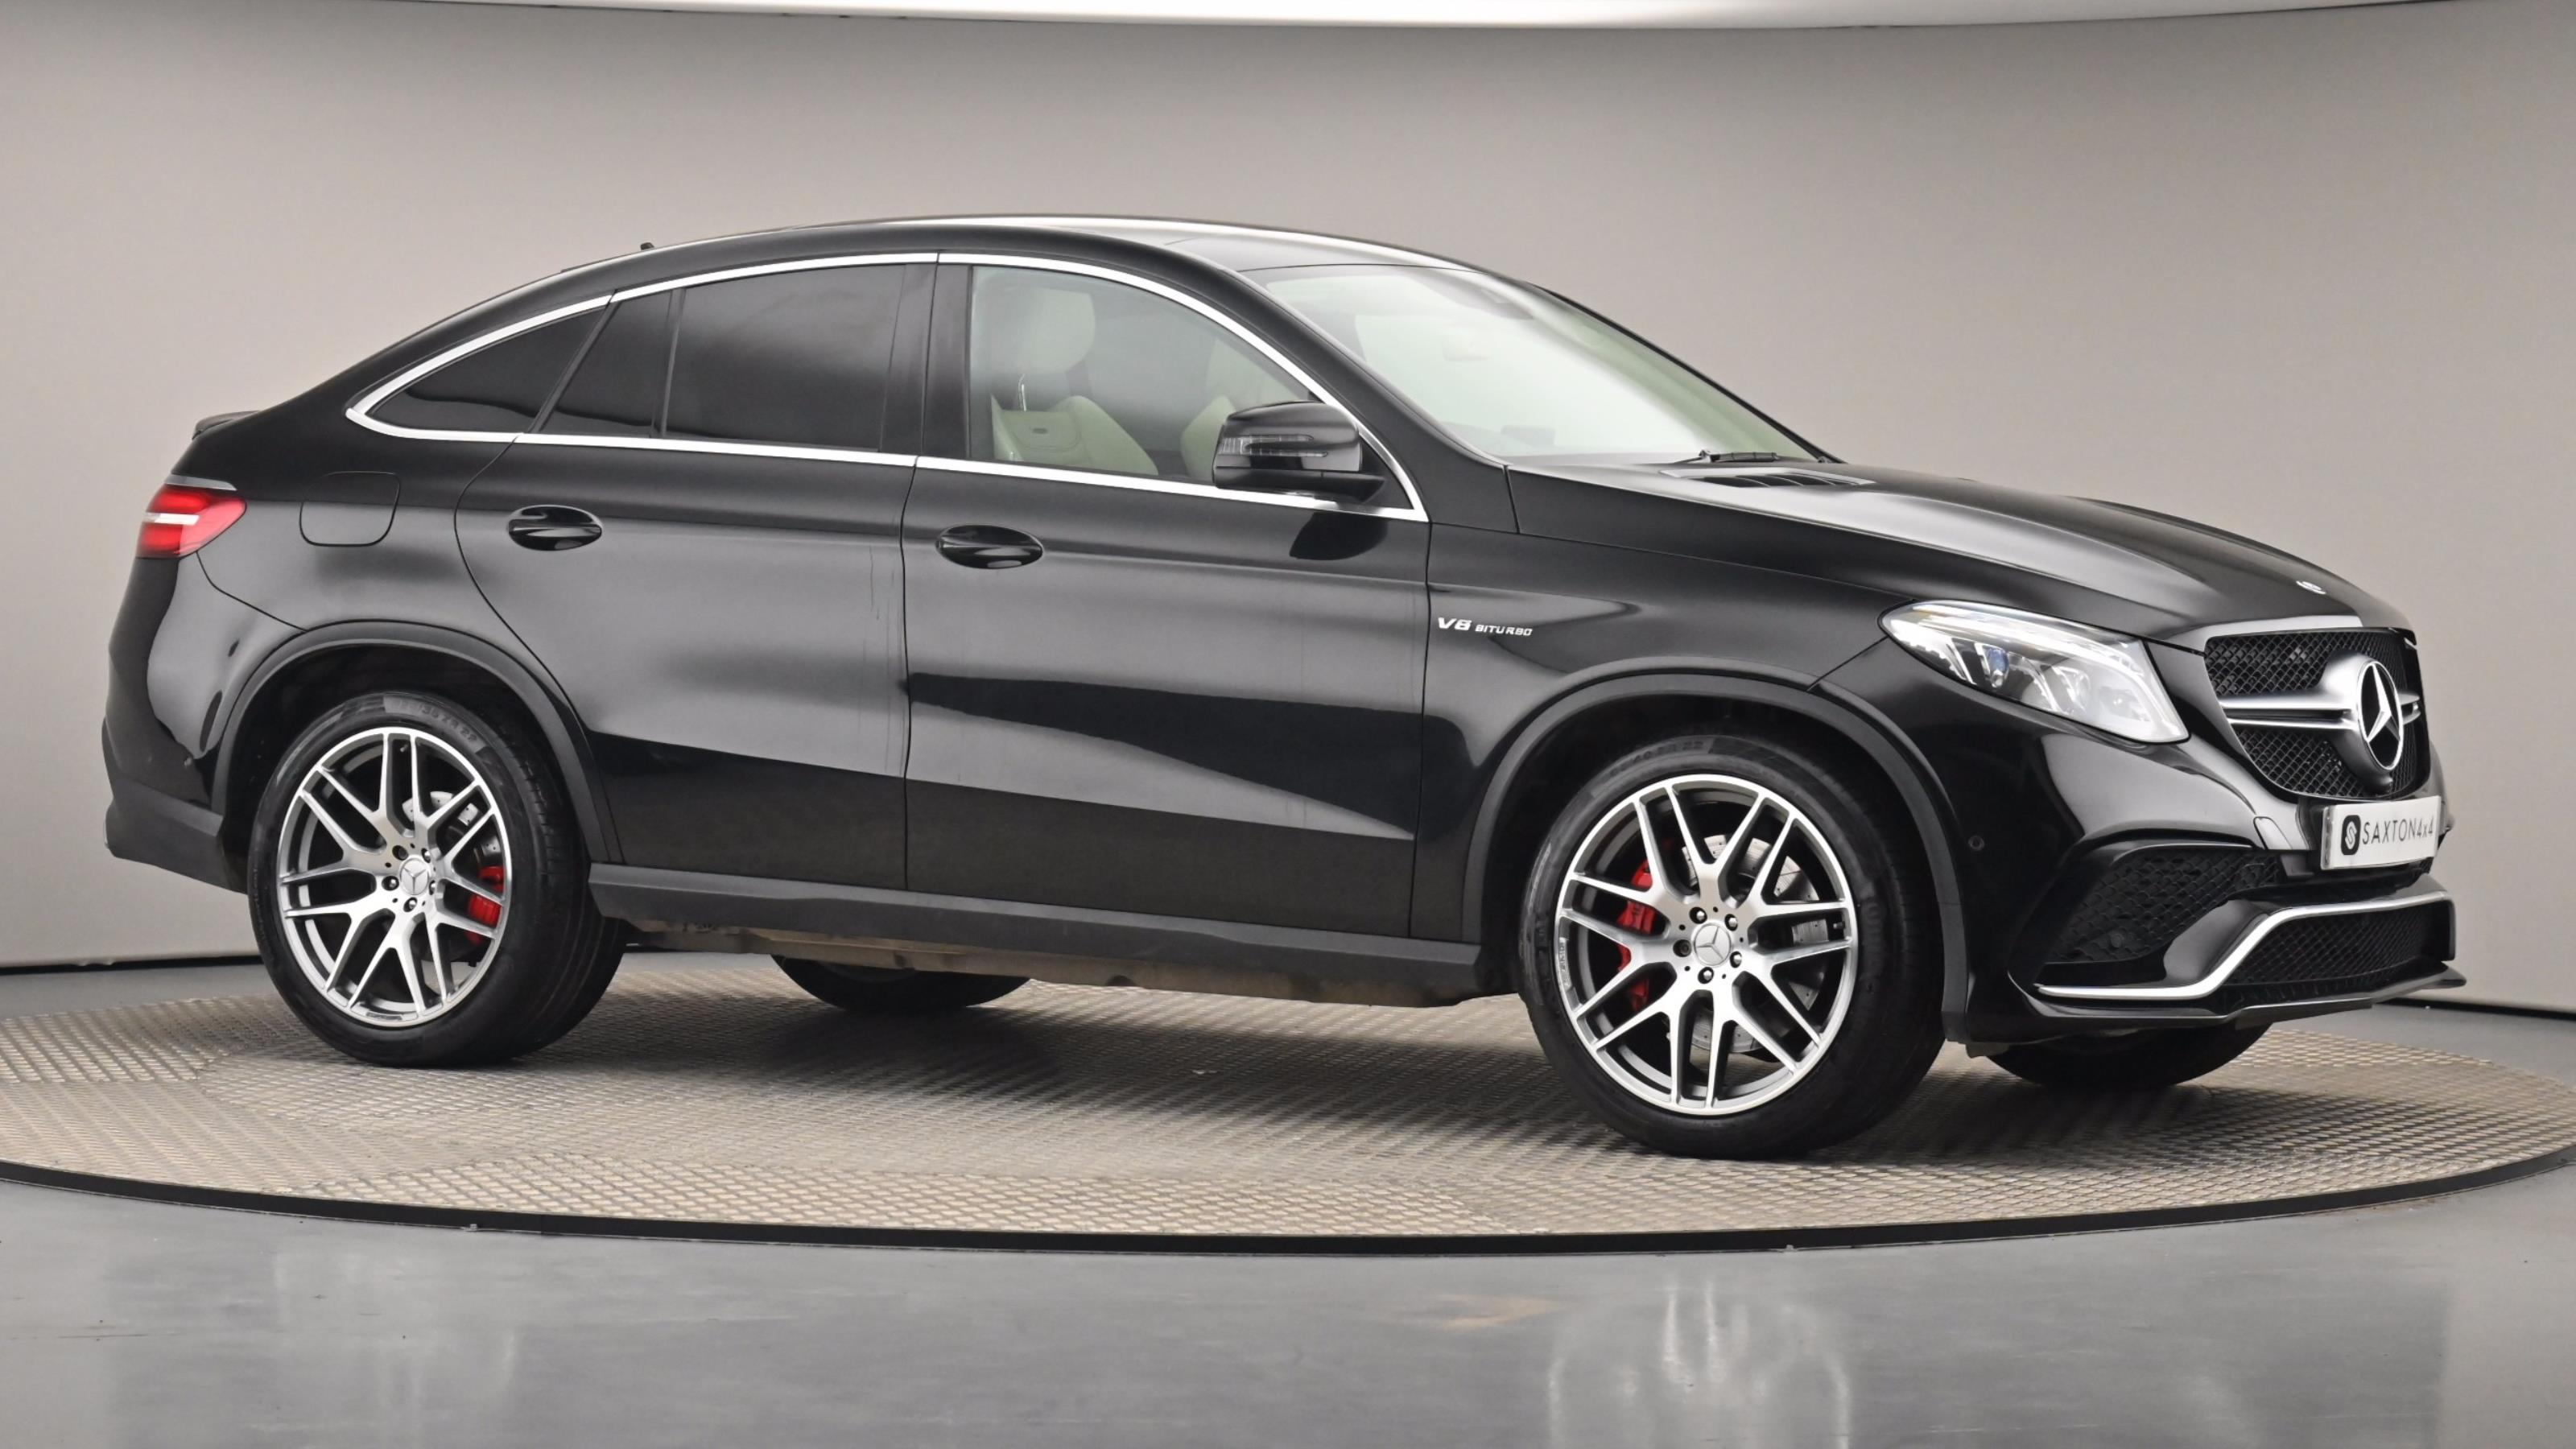 Used 2017 Mercedes-Benz GLE COUPE AMG GLE 63 S 4Matic 5dr 7G-Tronic BLACK at Saxton4x4